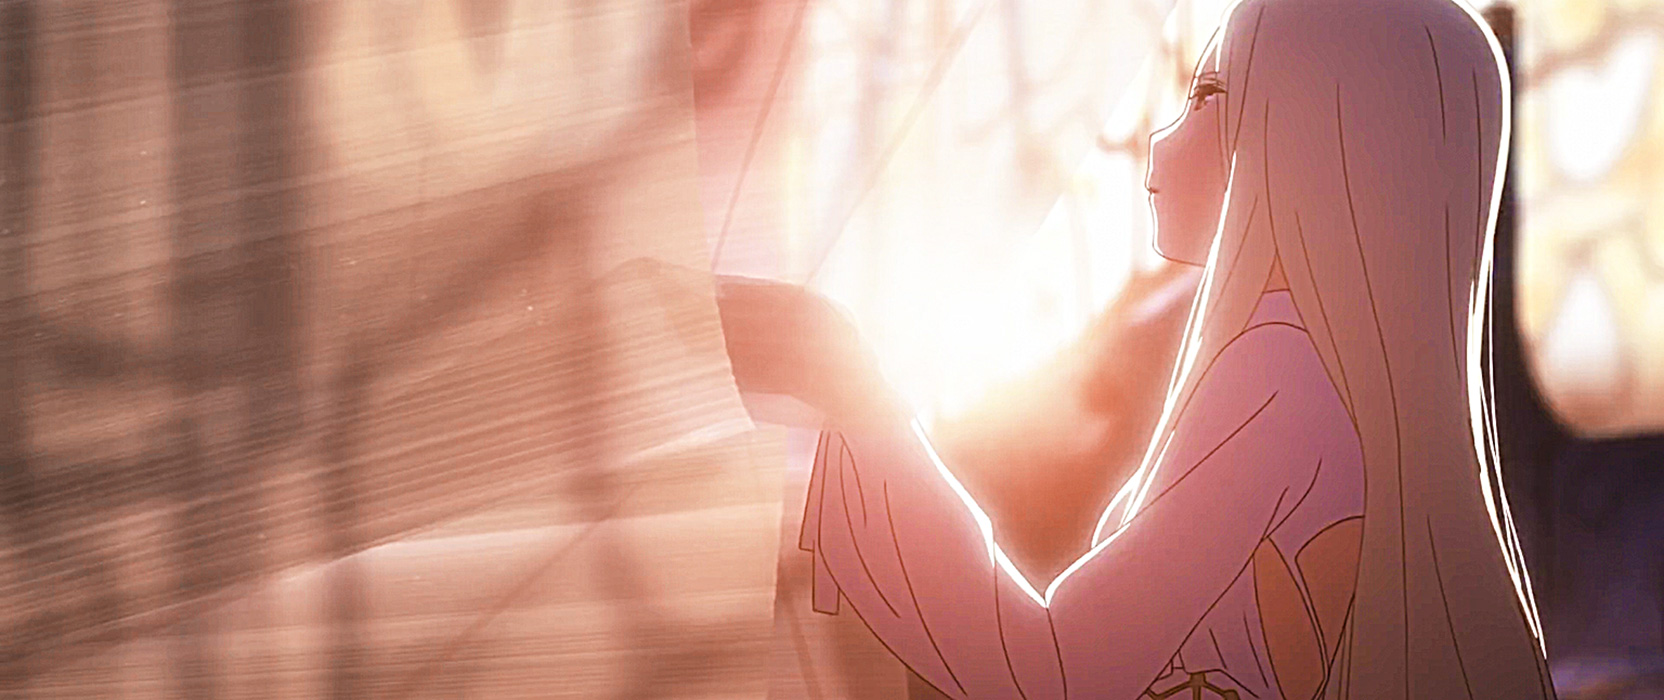 Maquia: When the Promised Flower Blooms by Mari Okada.